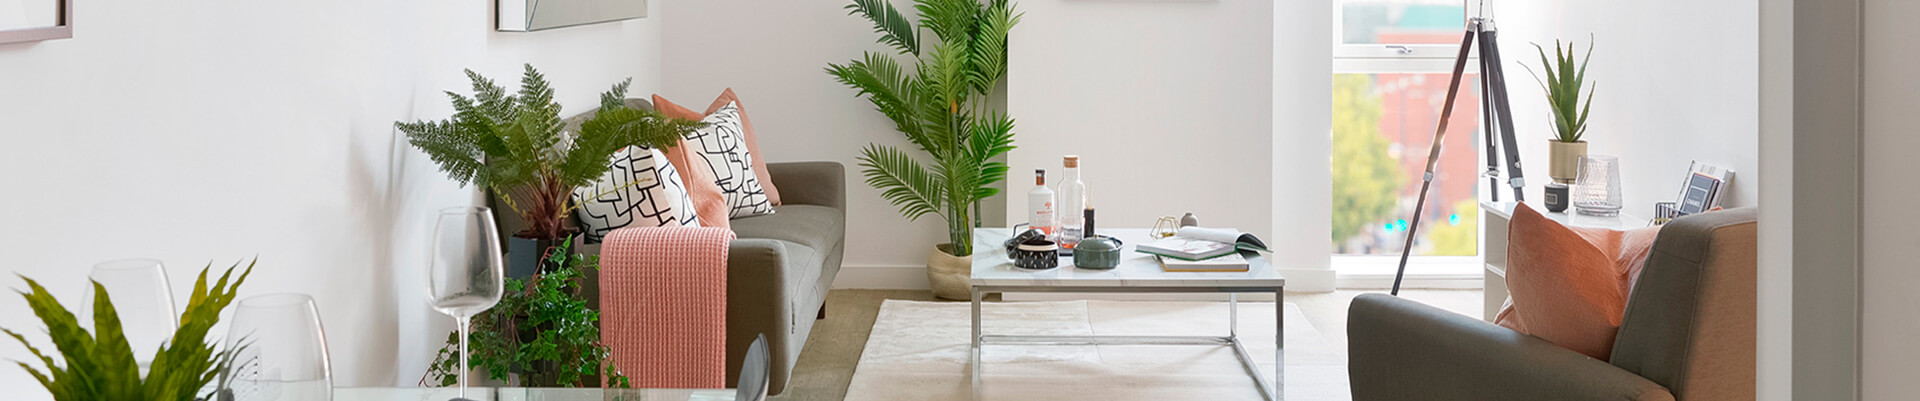 Find A Room To Rent In The UK | ideal flatmate